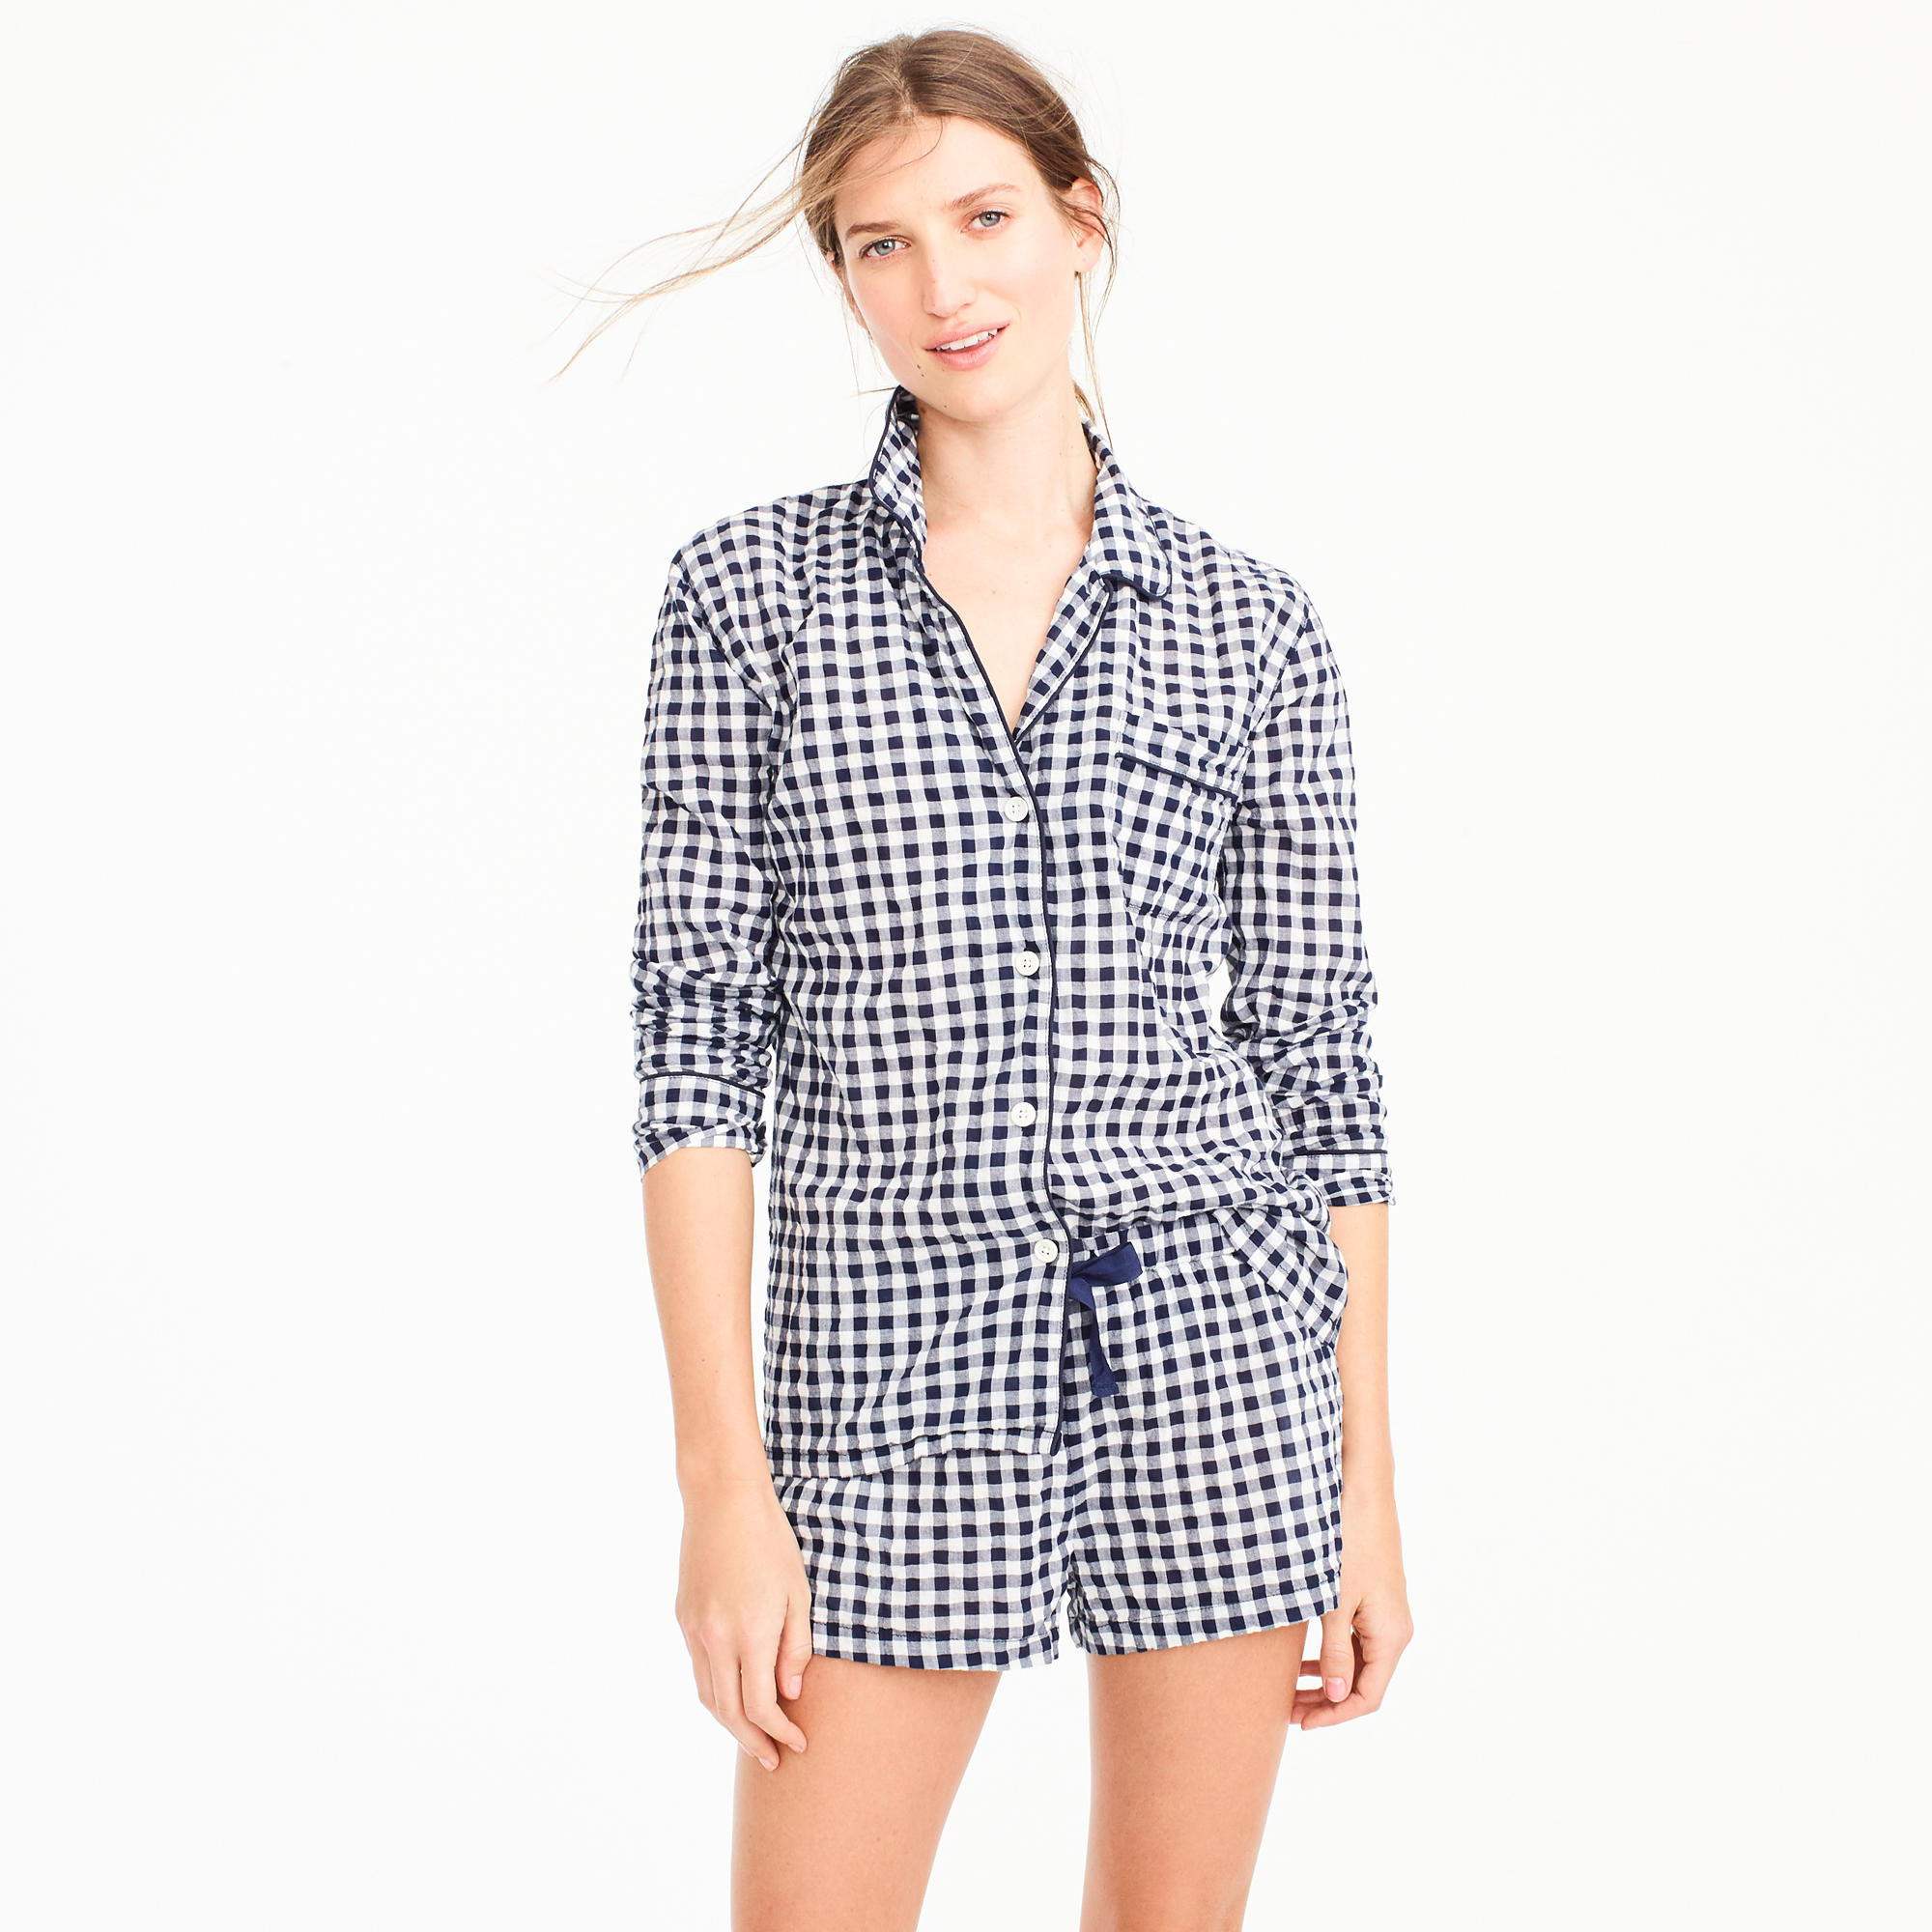 Women's Pajama Sets & Sleep Shirts | J.Crew